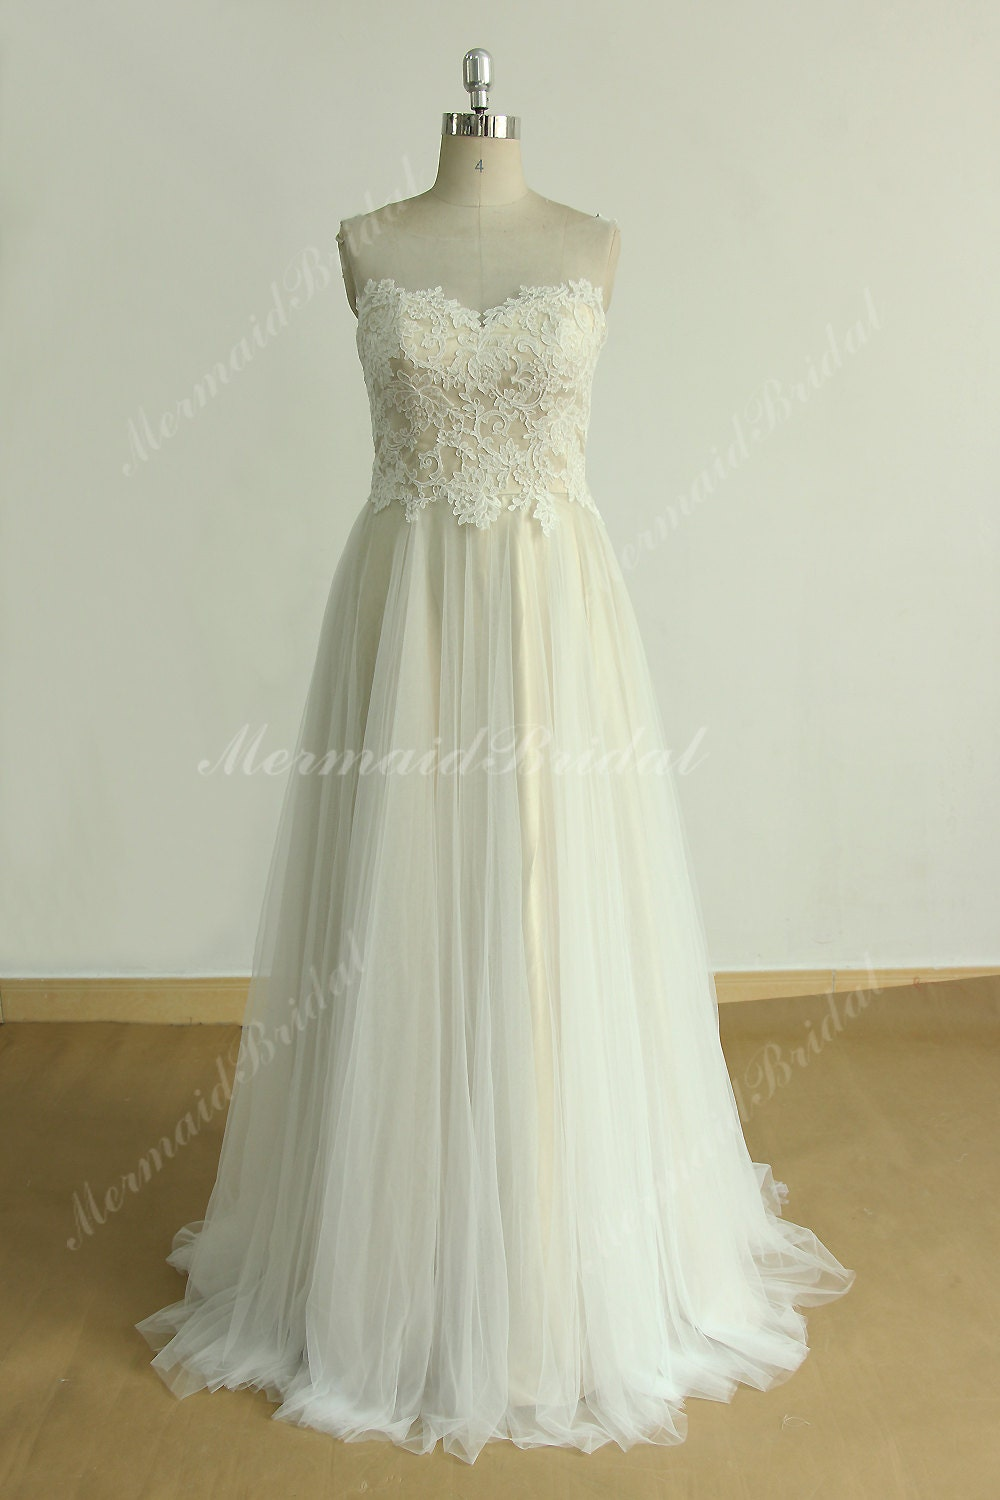 Flowy Tulle Lace Wedding Dress With Illusion Neckline And